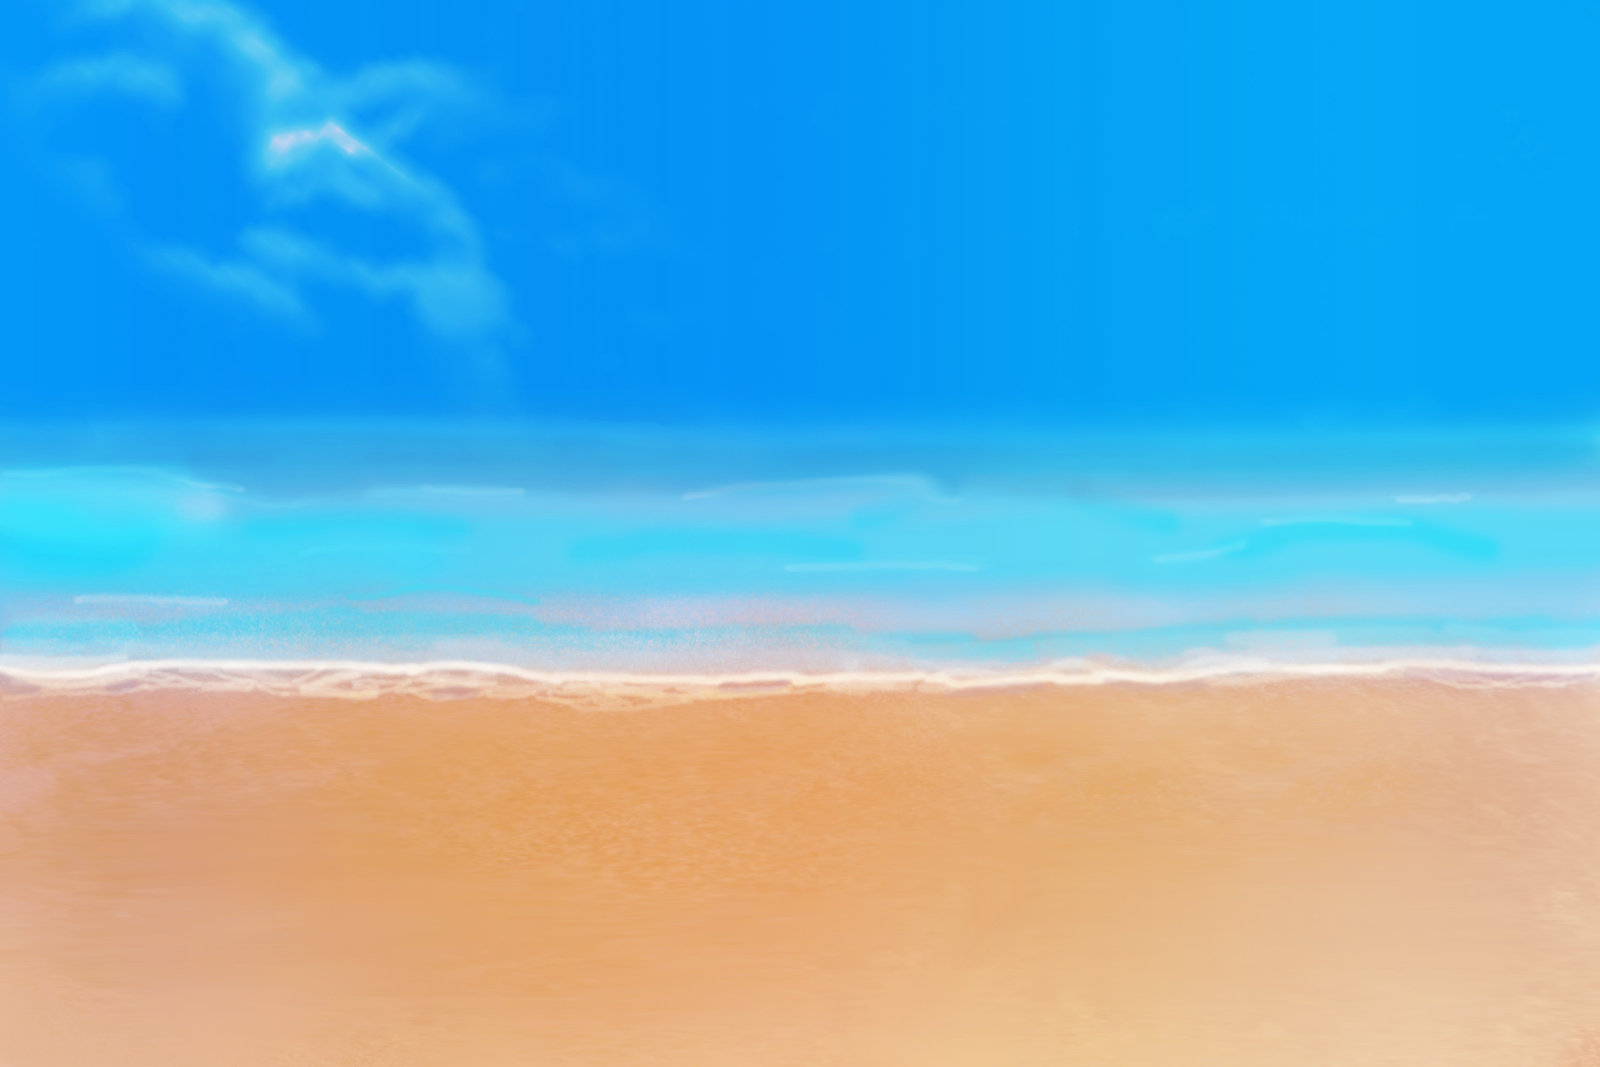 DeviantArt: More Like Anime Style Background - Beach by FireSnake666